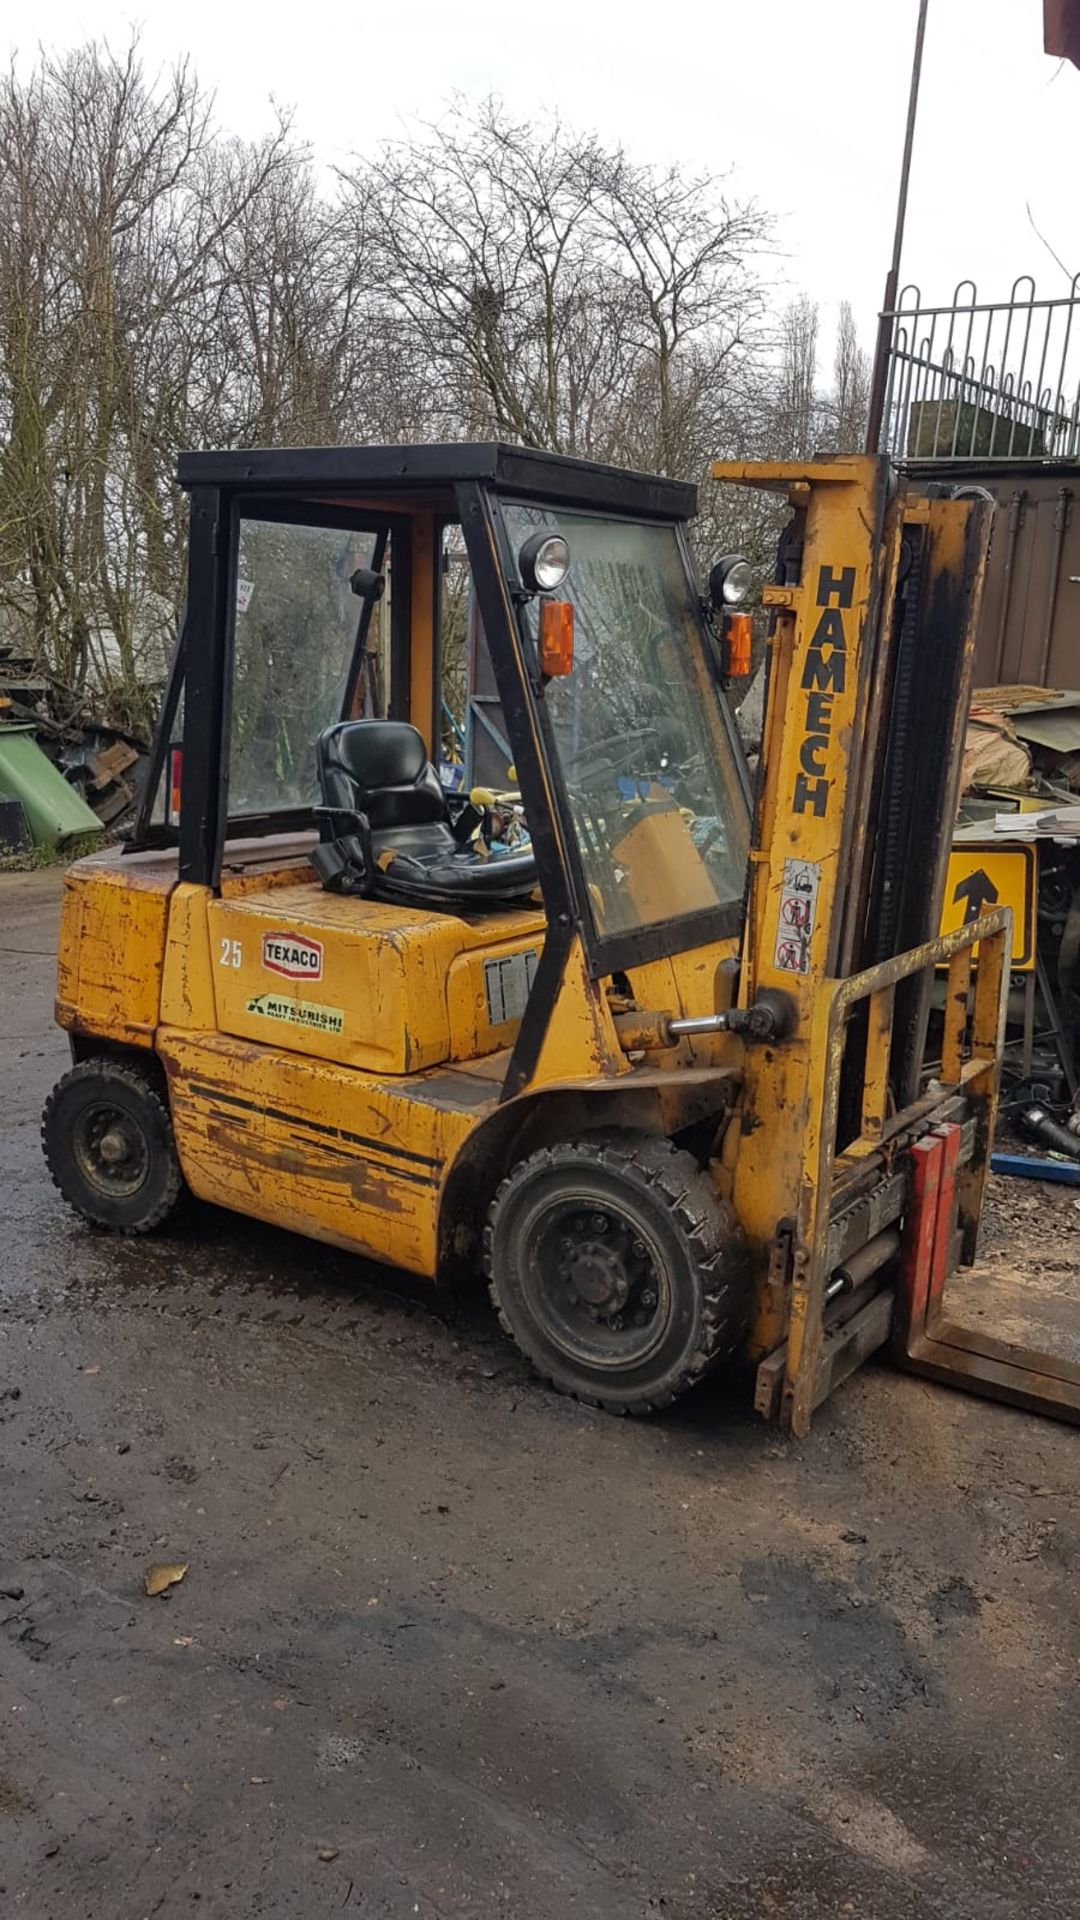 Lot 108 - MITSUBISHI FD25 DIESEL POWERED FORKLIFT TRUCK, WITH SIDE SHIFT, 2.5 TONNE RATED CAPACITY. VENDORS